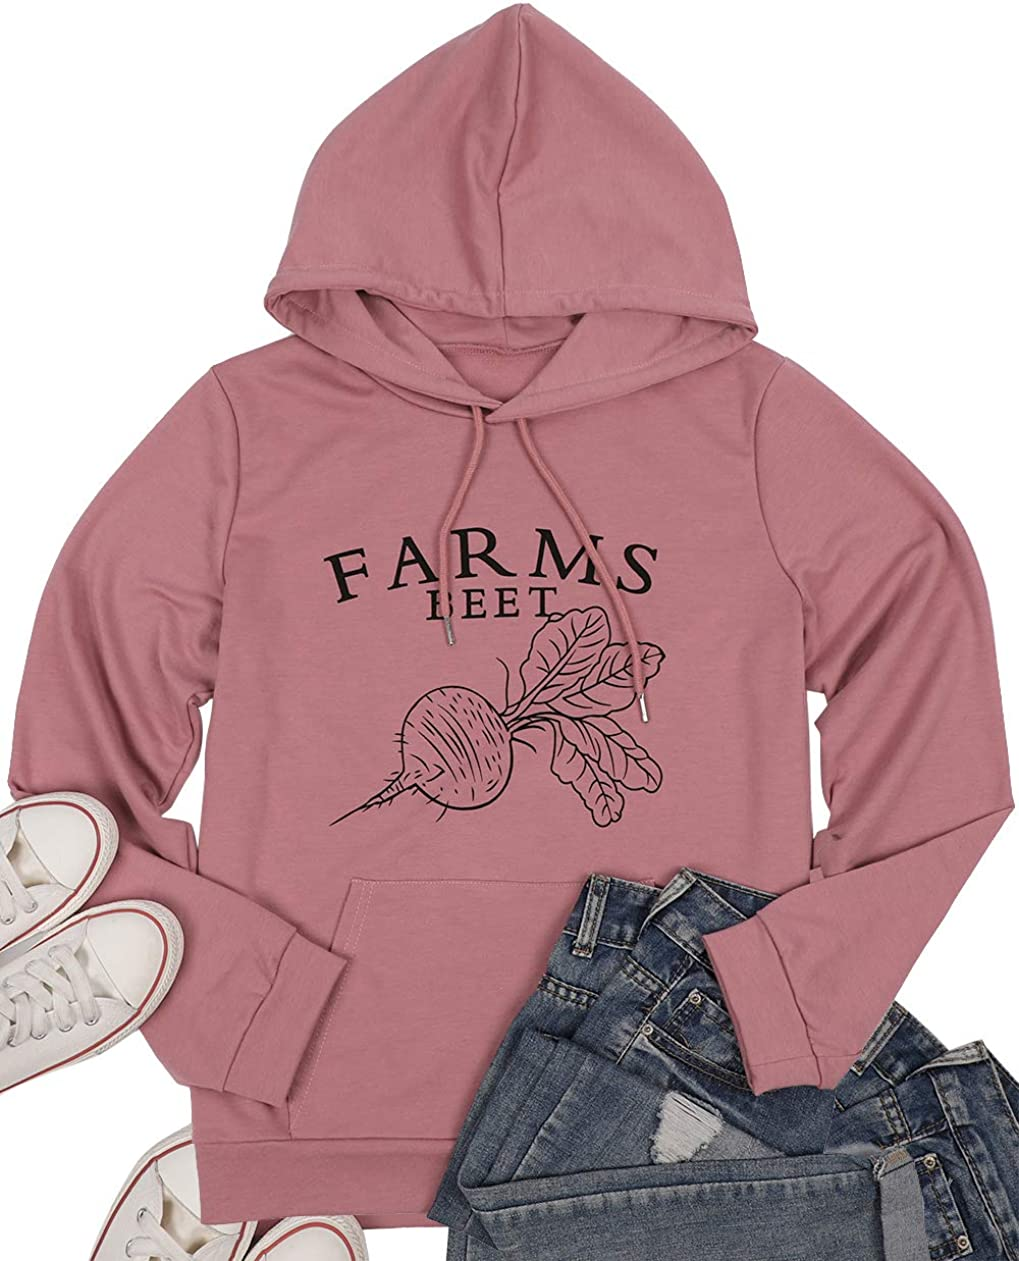 Farms Beet Print Hooded Sweatshirt Women the Office Hoodie Drawstring Sweater Casual Long Sleeve Pullover Tops